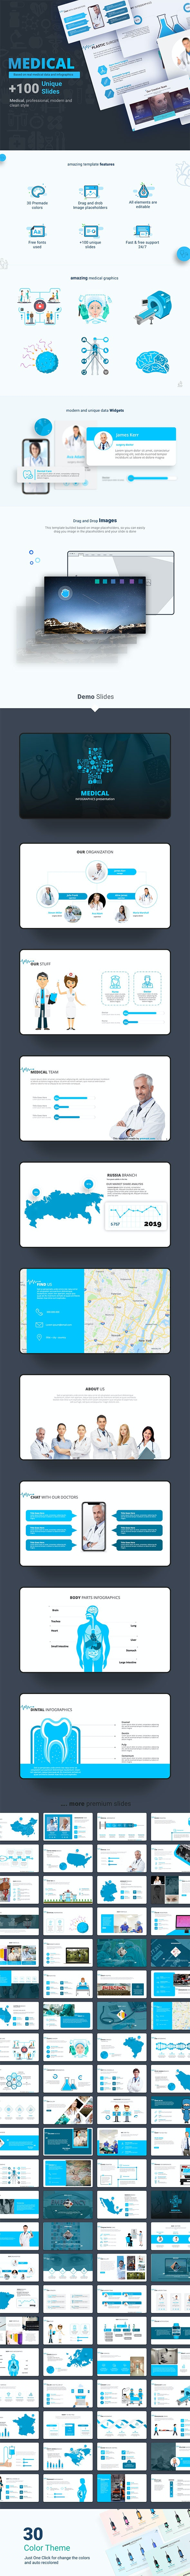 Medical presentation powerpoint template - PowerPoint Templates Presentation Templates